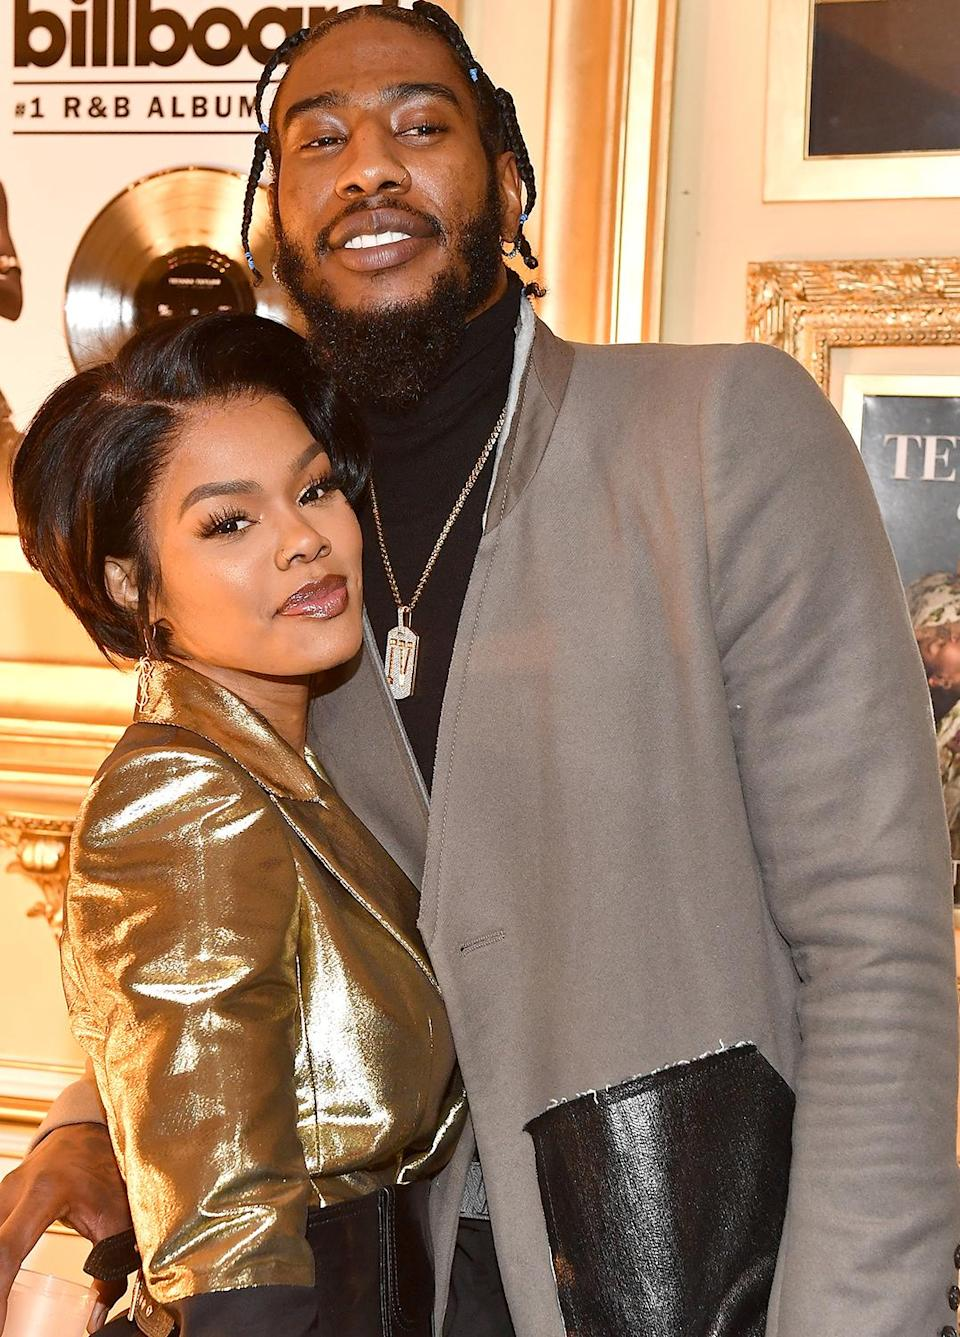 <p>Teyana Taylor and Iman Shumpert attend their Black Tie Masquerade Party on New Year's Eve in Alpharetta, Georgia. </p>